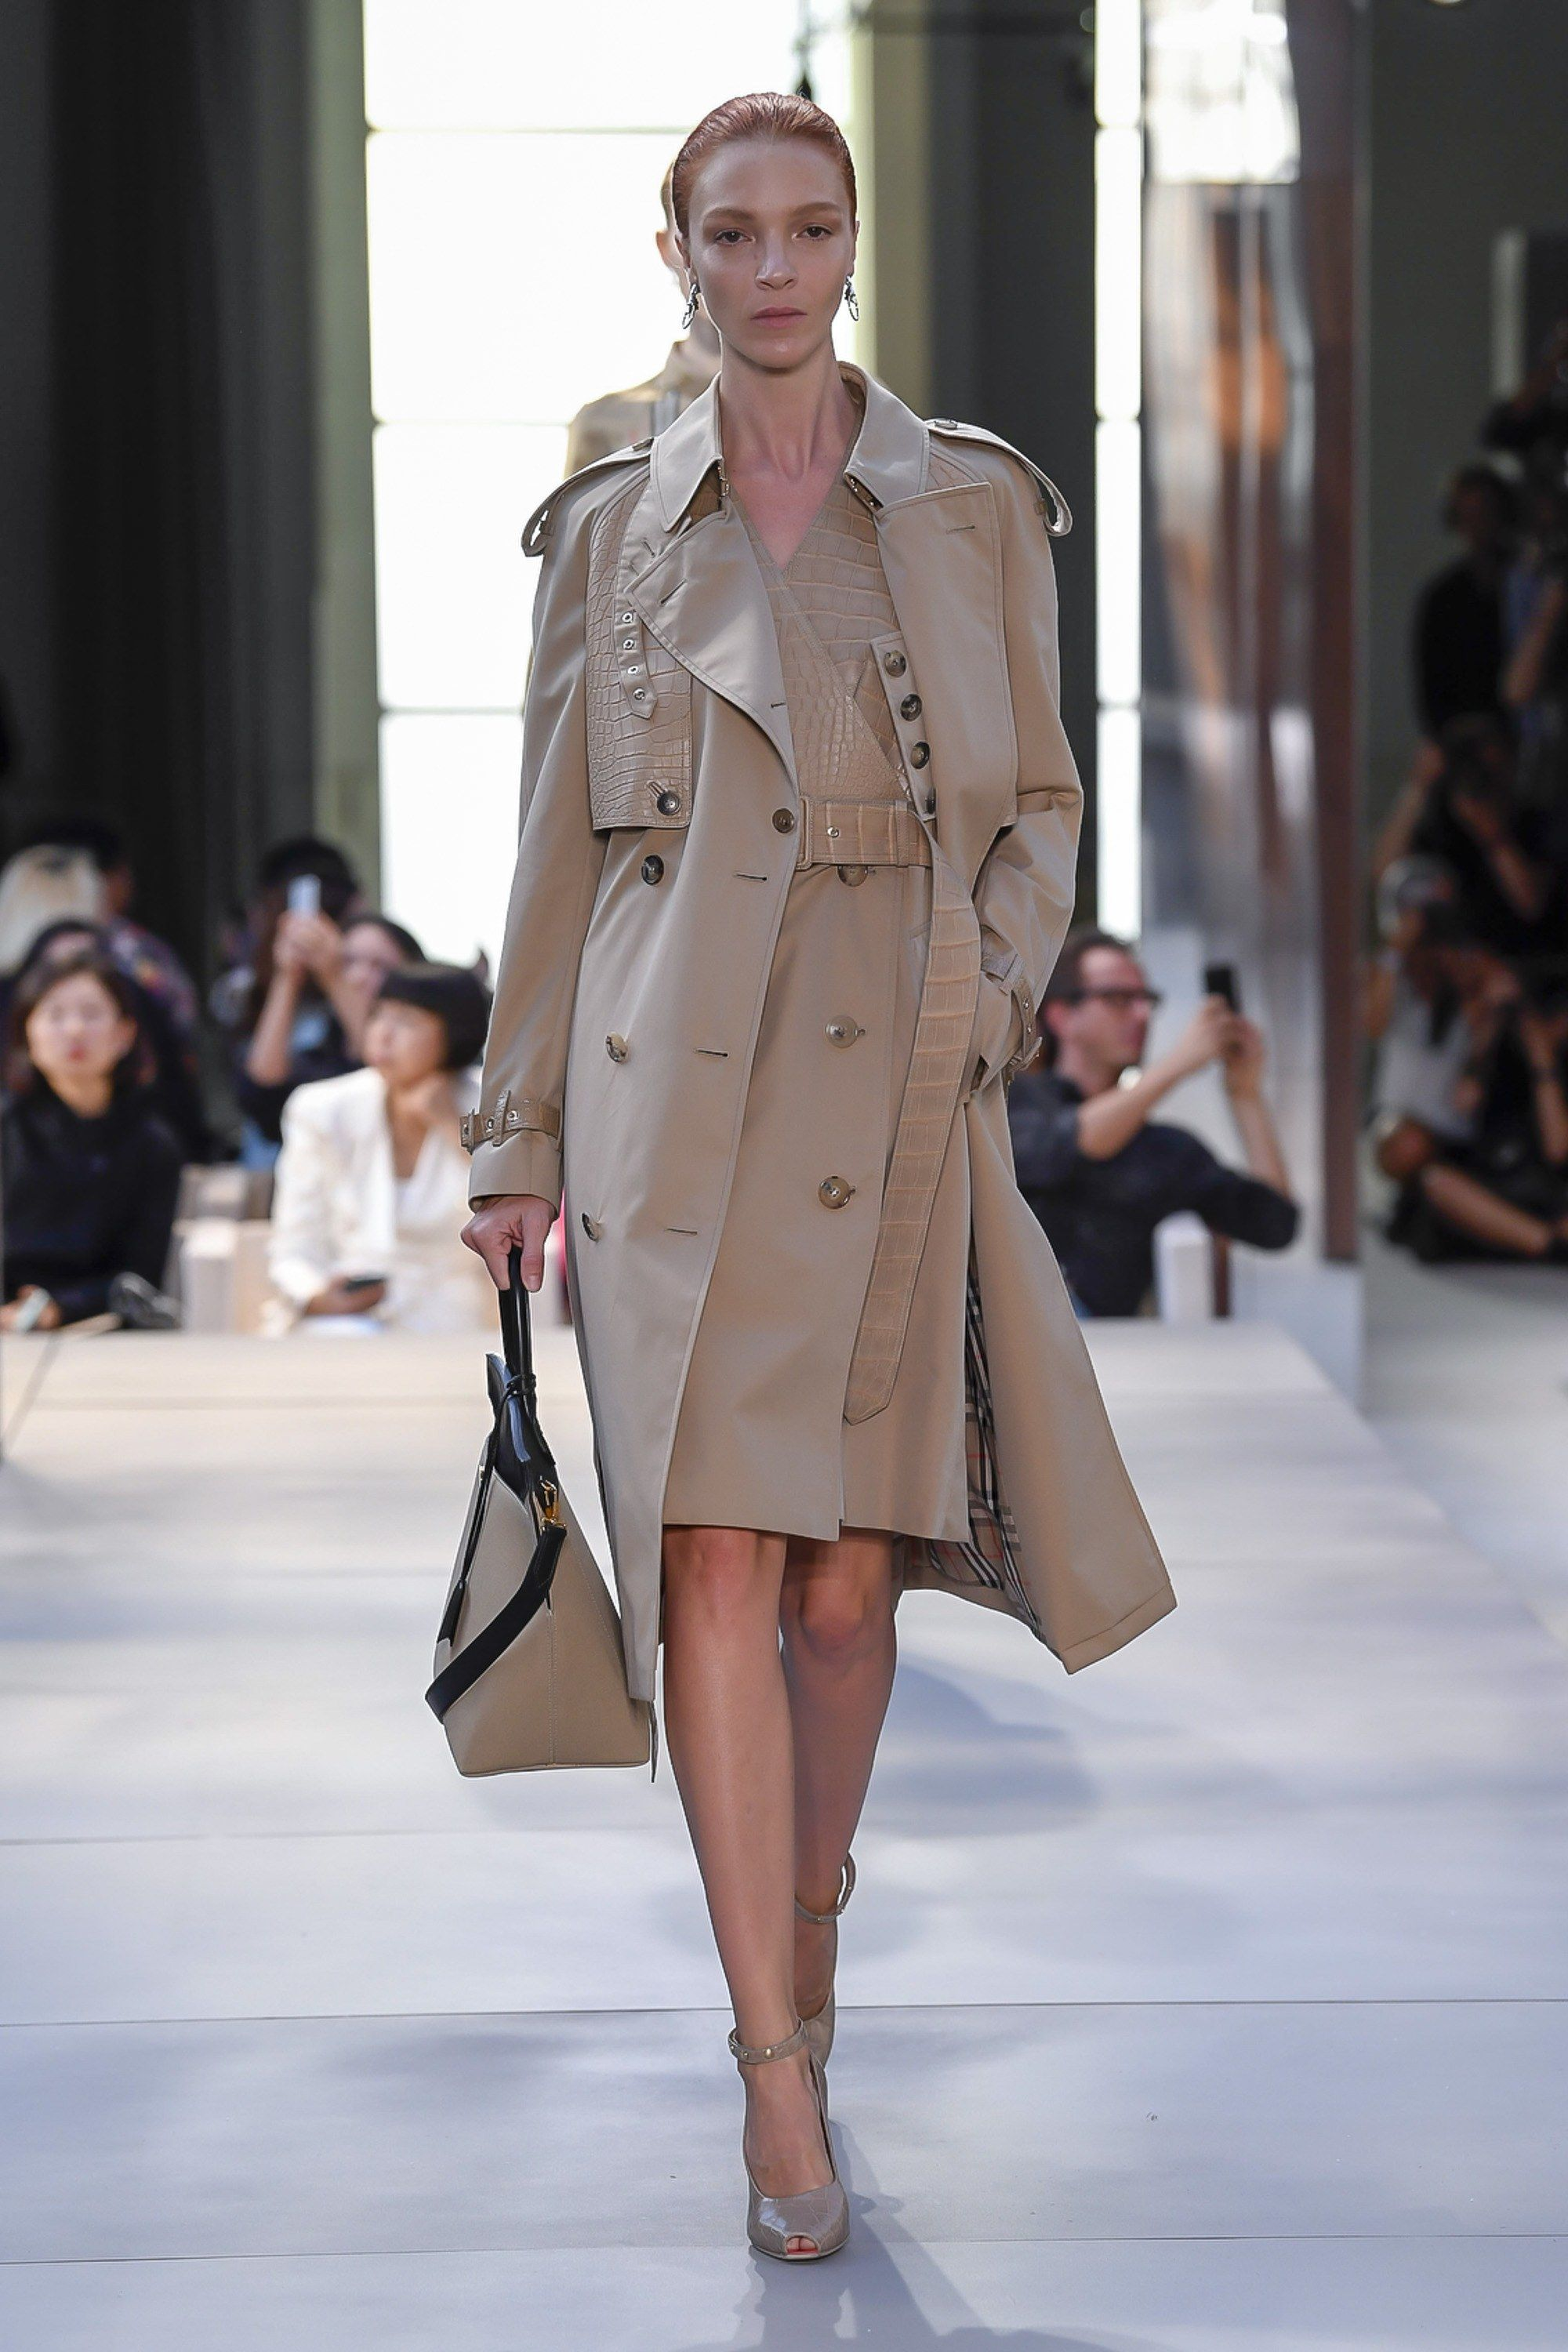 ec567f633a7 Burberry Spring 2019 Ready-to-Wear Collection - Vogue  clothes   beautifulclothes  fashion  apparel  fashiontrends  style  stylewatch   styletrends ...